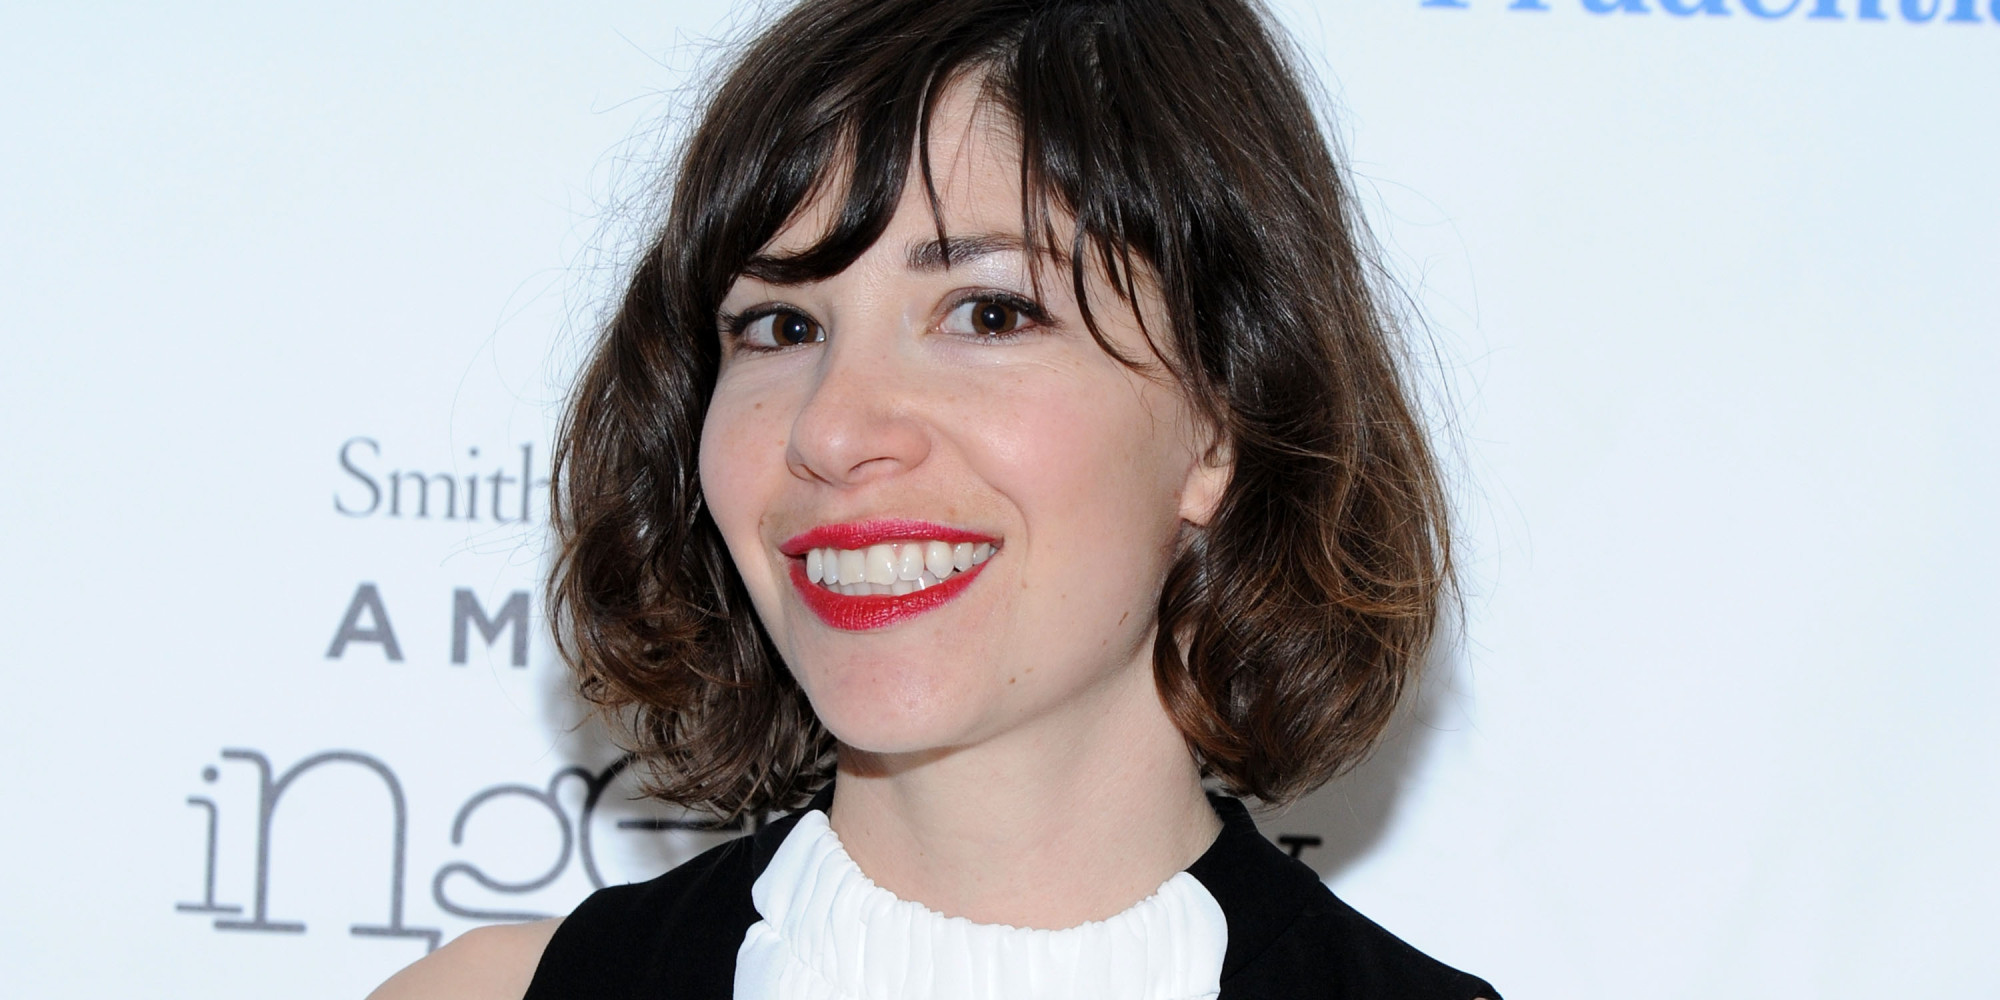 Carrie Brownstein earned a  million dollar salary - leaving the net worth at 2.5 million in 2018